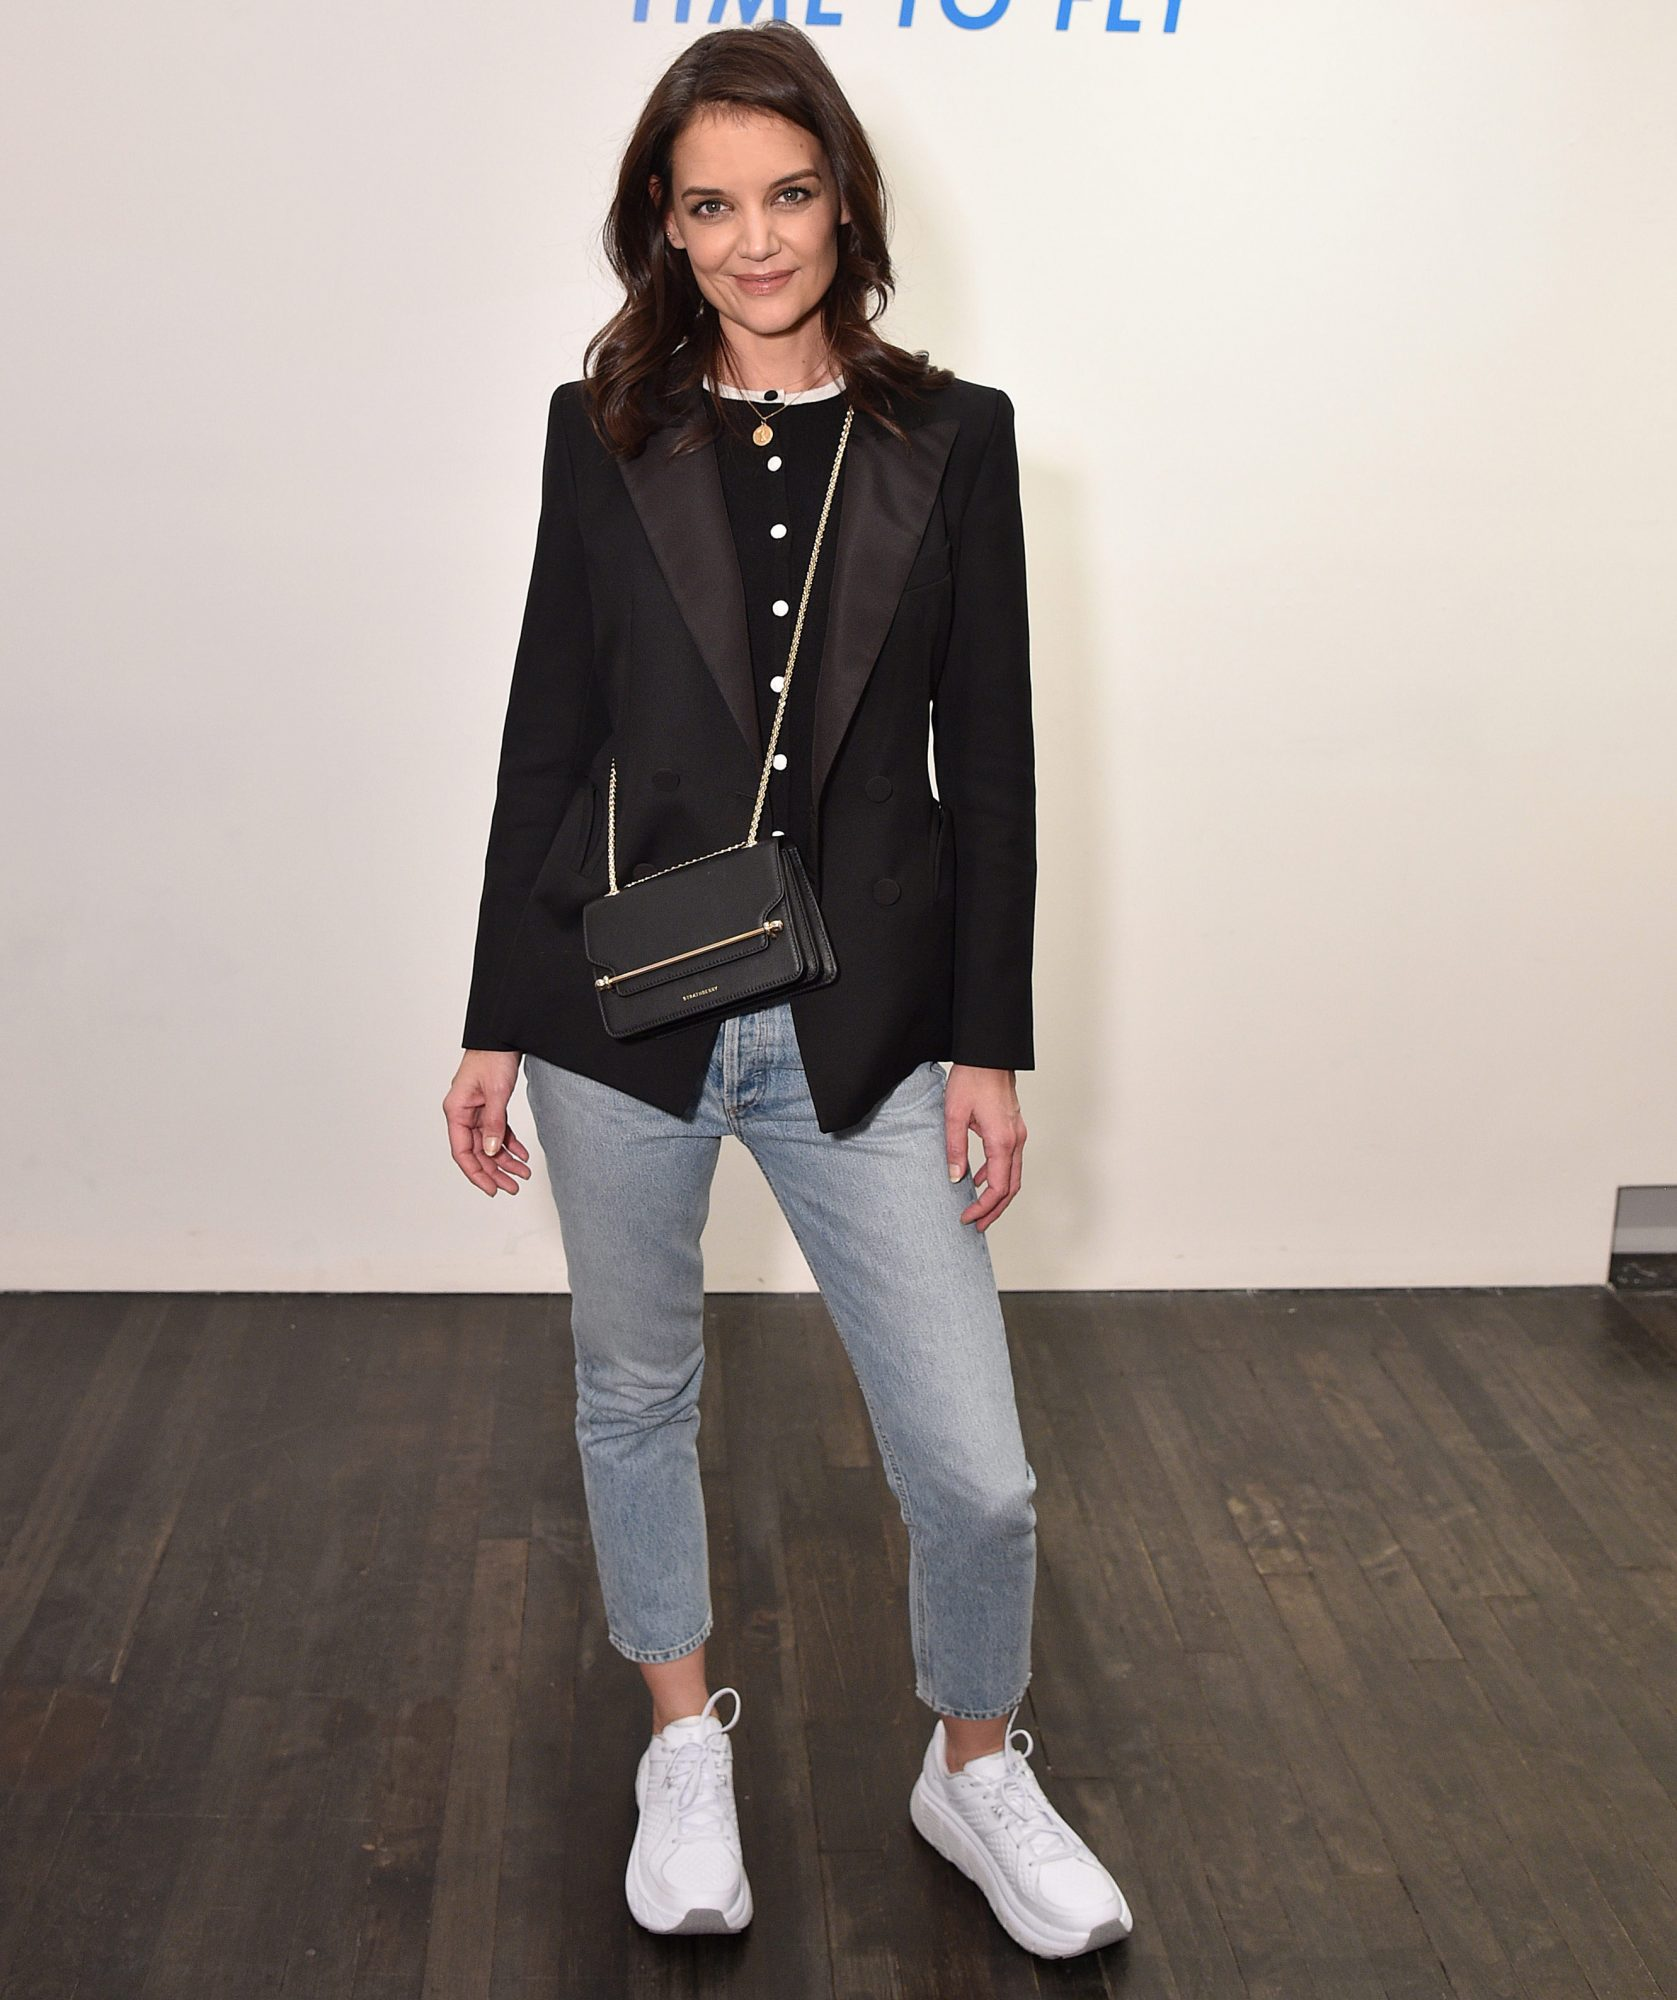 Katie Holmes Strathberry Bag - Embed